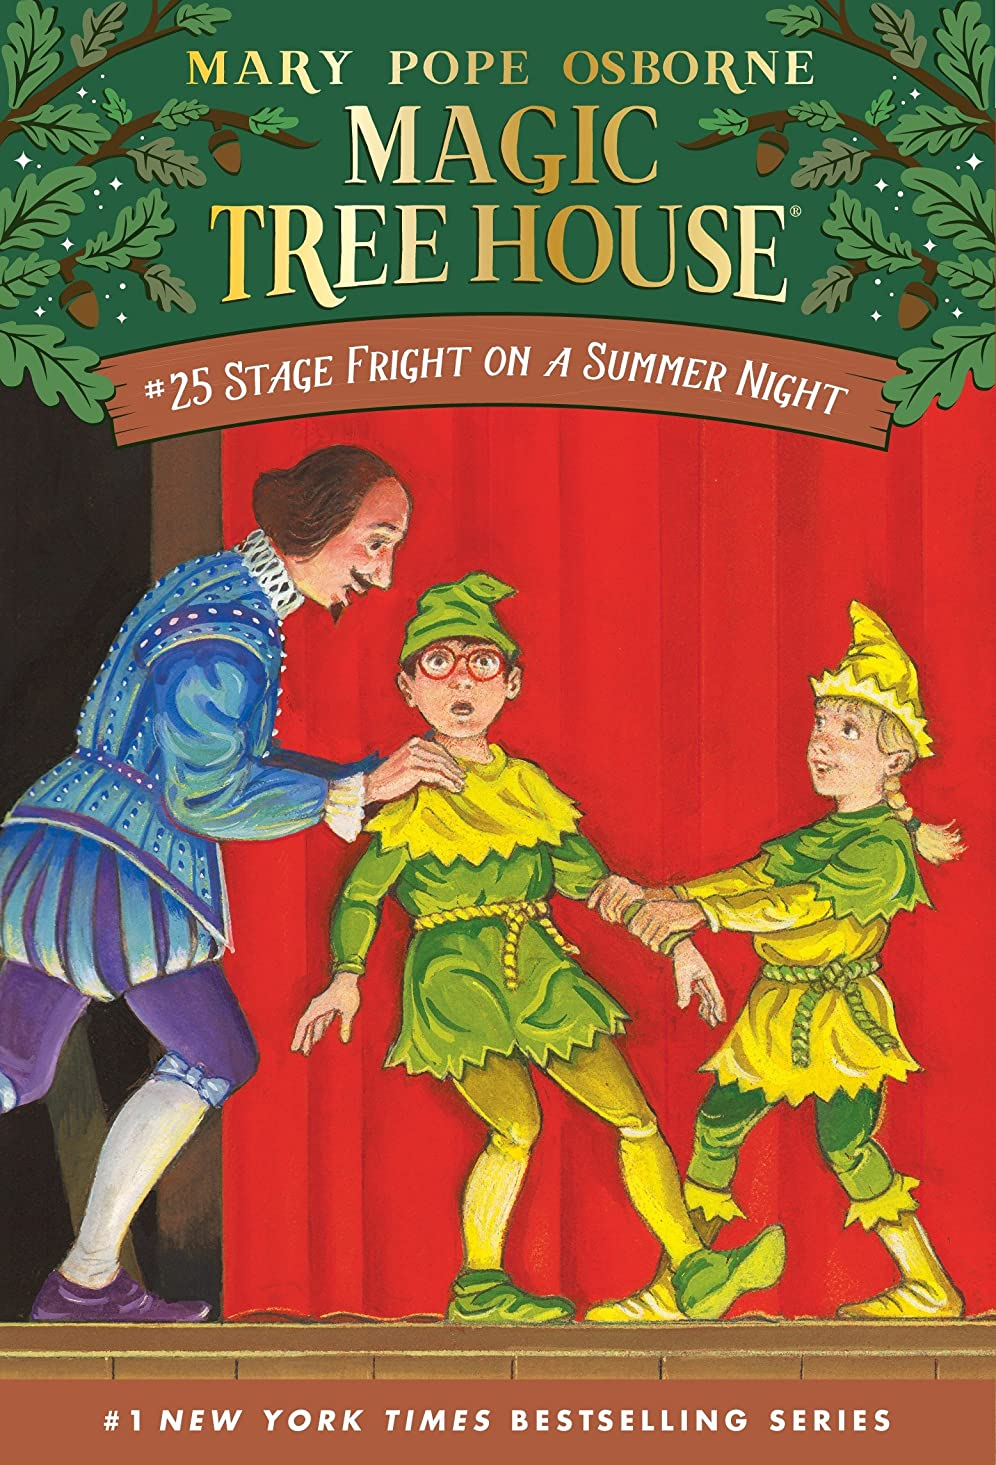 選択するズームインする他のバンドでStage Fright on a Summer Night (Magic Tree House Book 25) (English Edition)